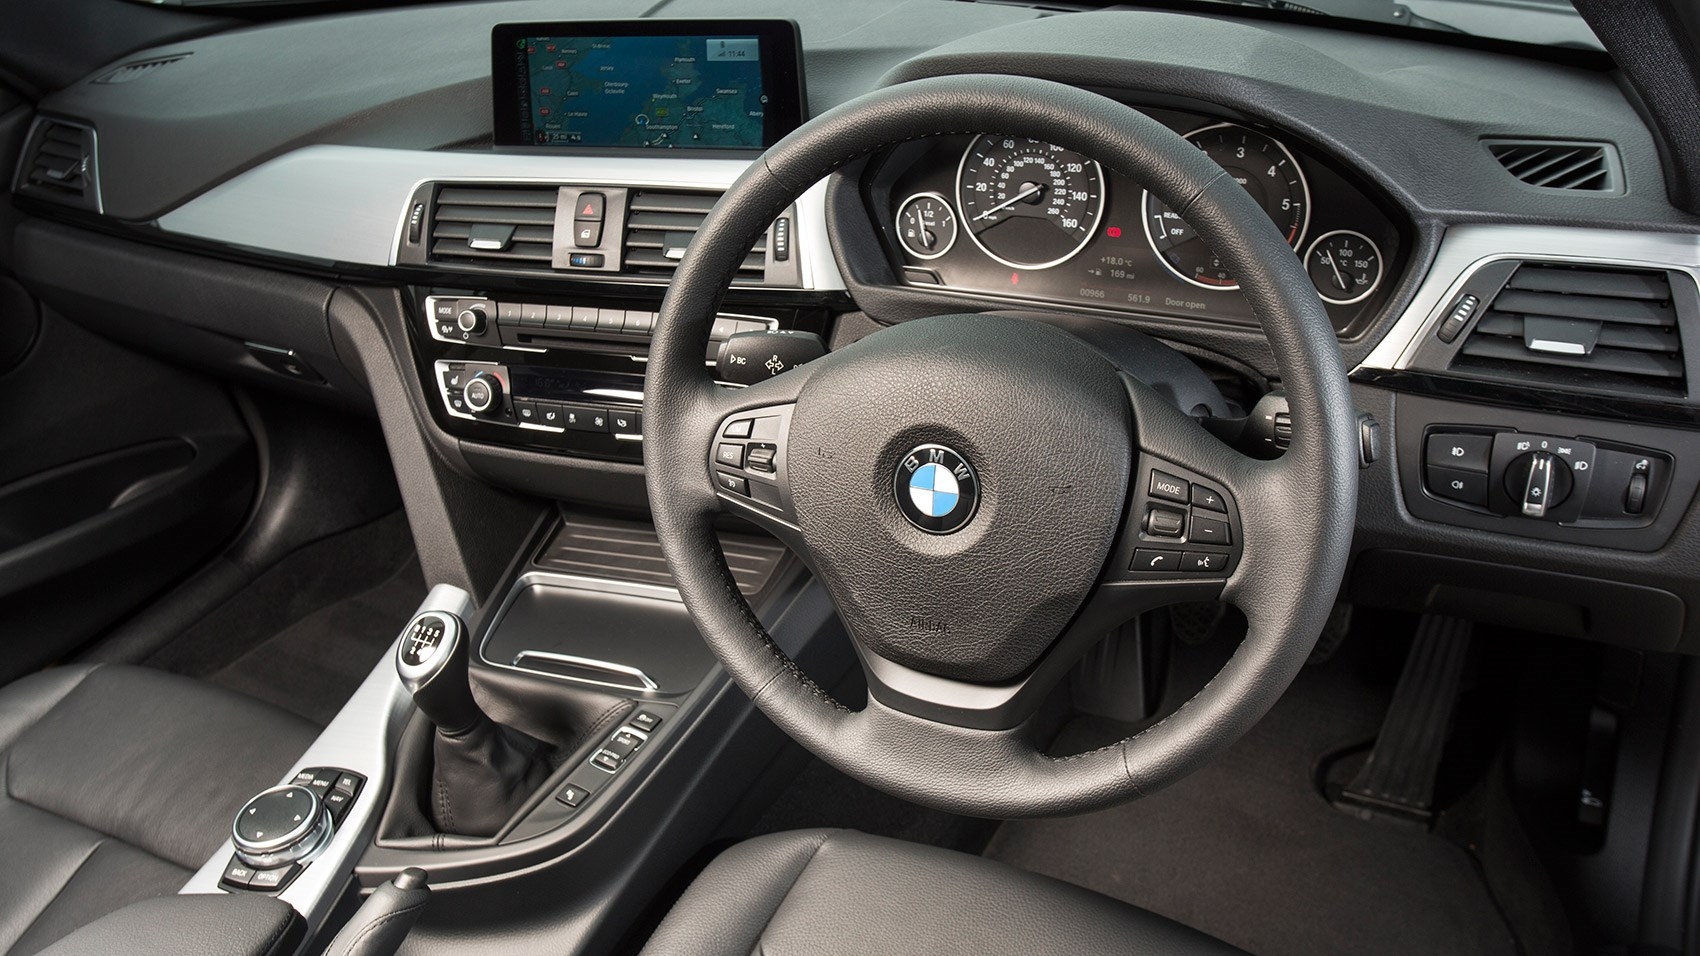 2017 Model Interior Of BMW 3 Series